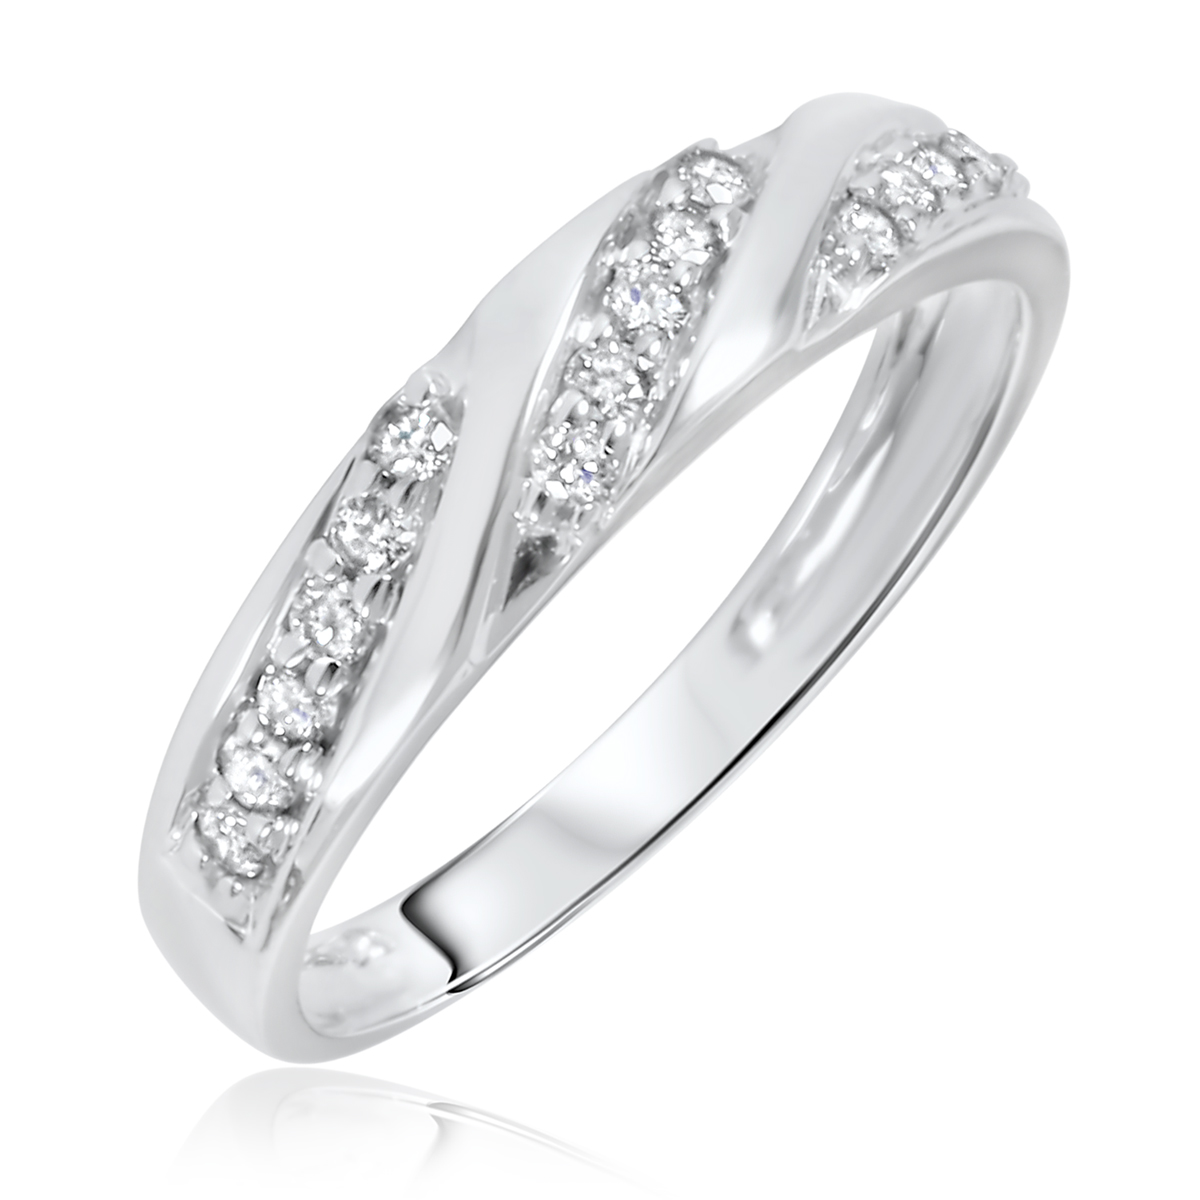 Wedding Bands Long Island Prices